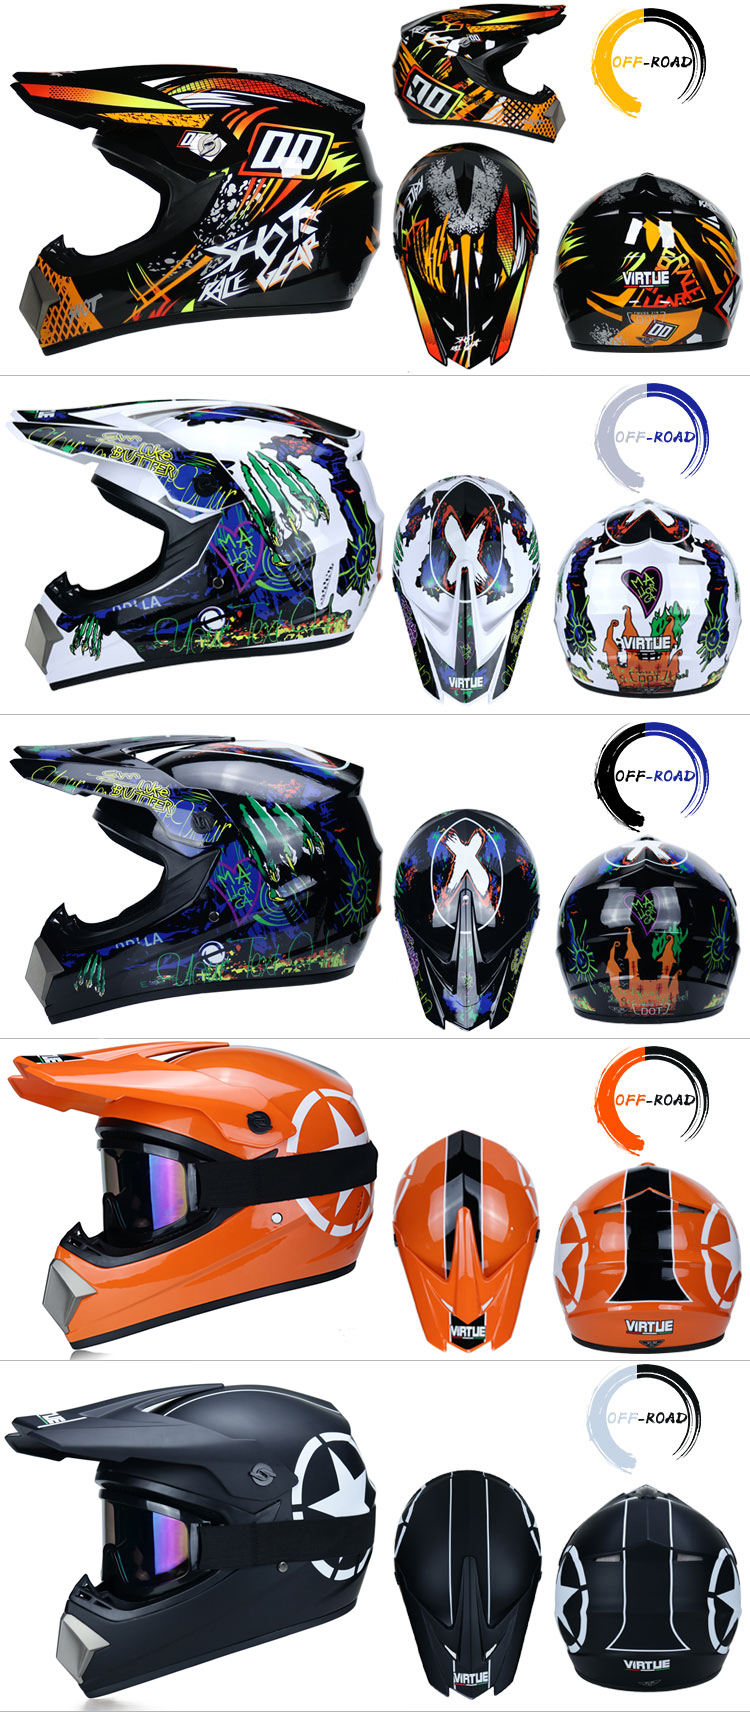 Professional Lightweight Off-road Motorcycle Helmet Racing Bike Children ATV Off-road Vehicle 6